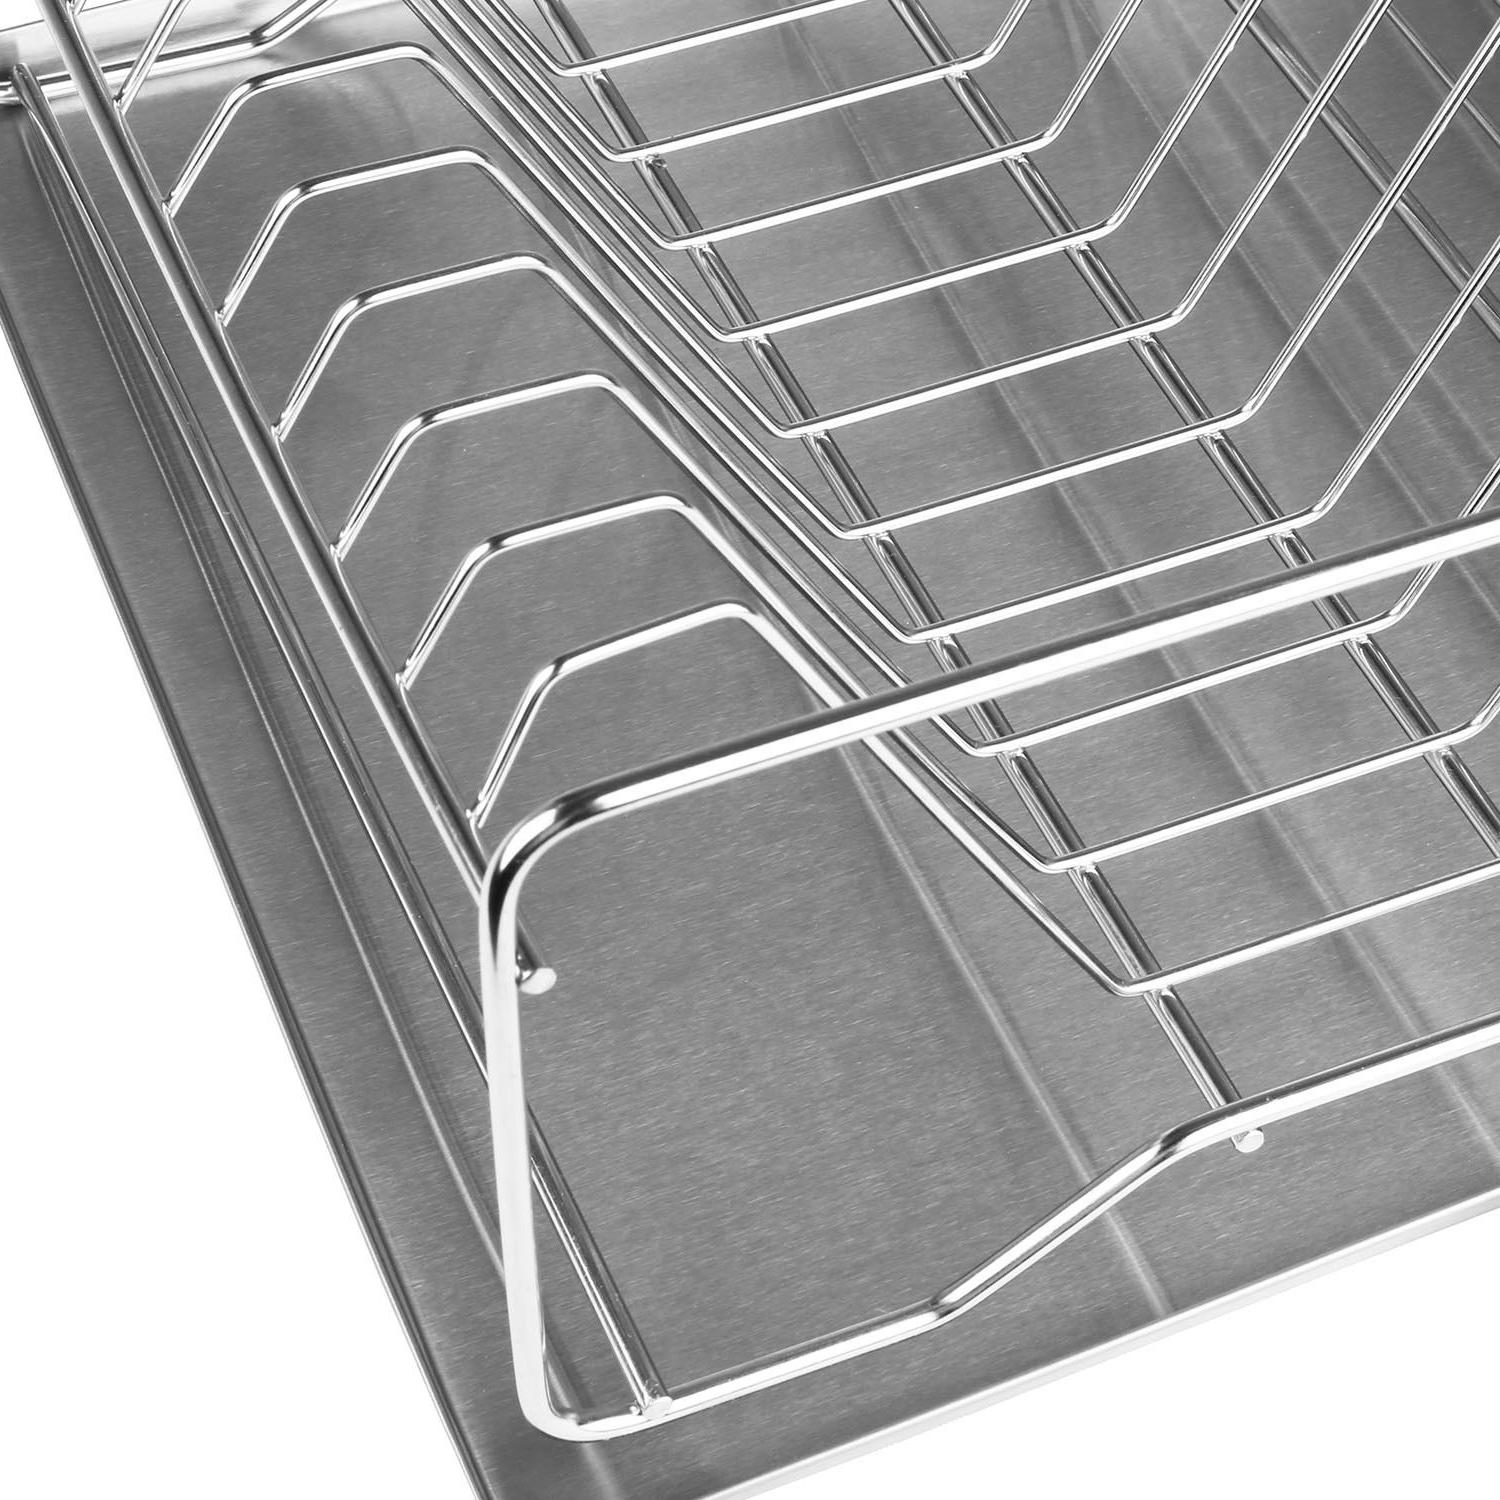 Drying with Tray Multi-function